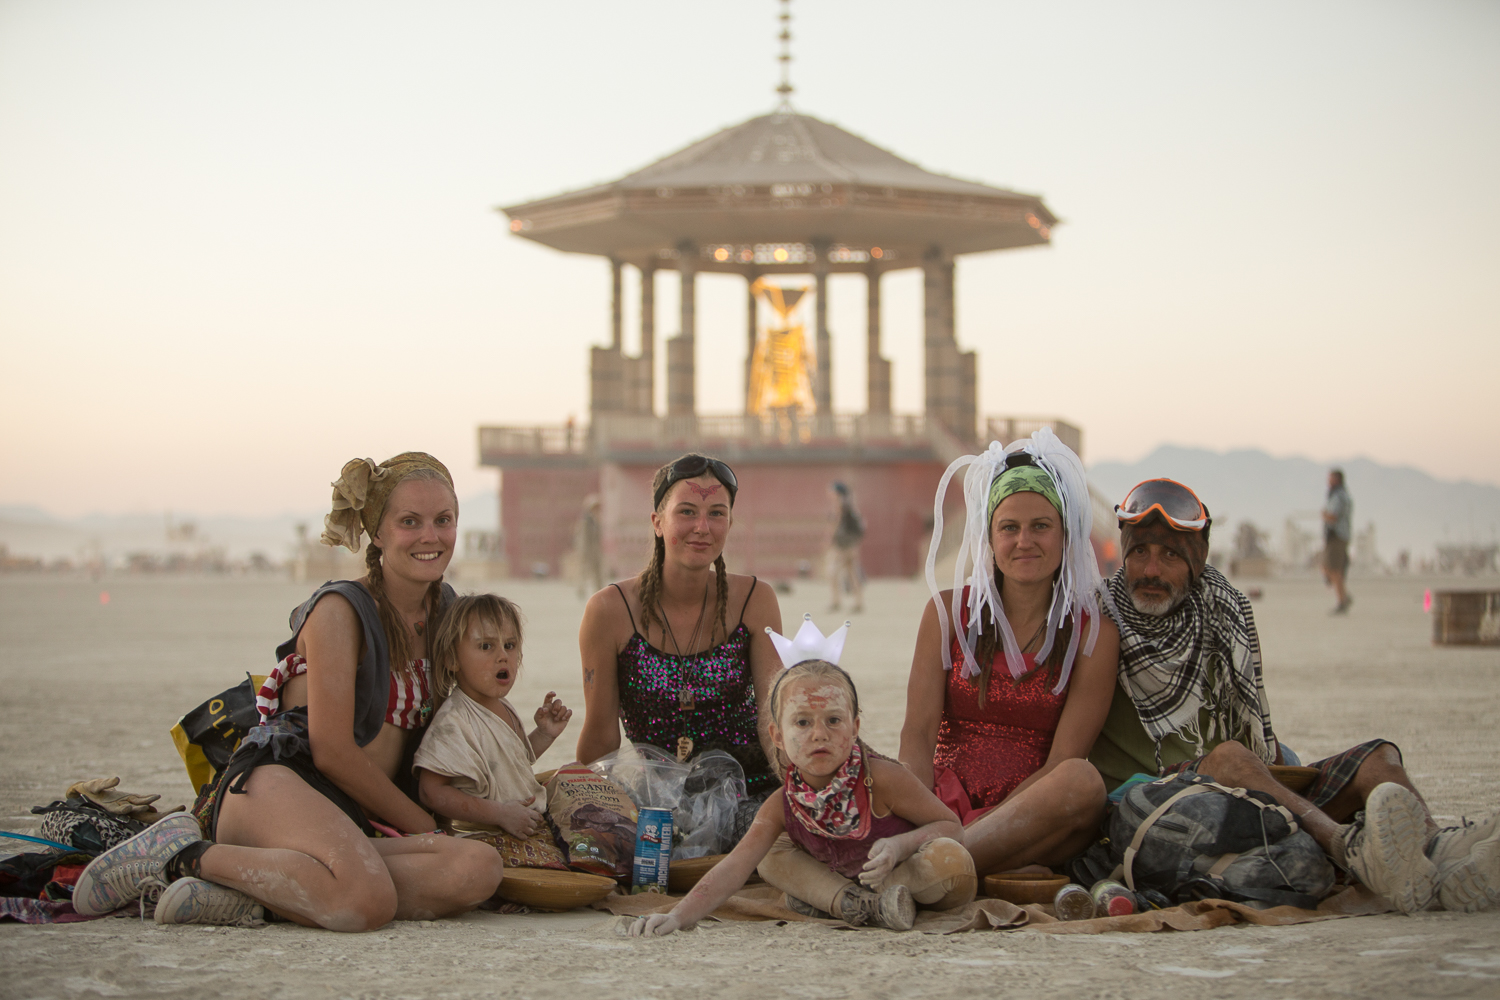 These 30+ Burning Man Photos Capture The True Beauty Of Humanity